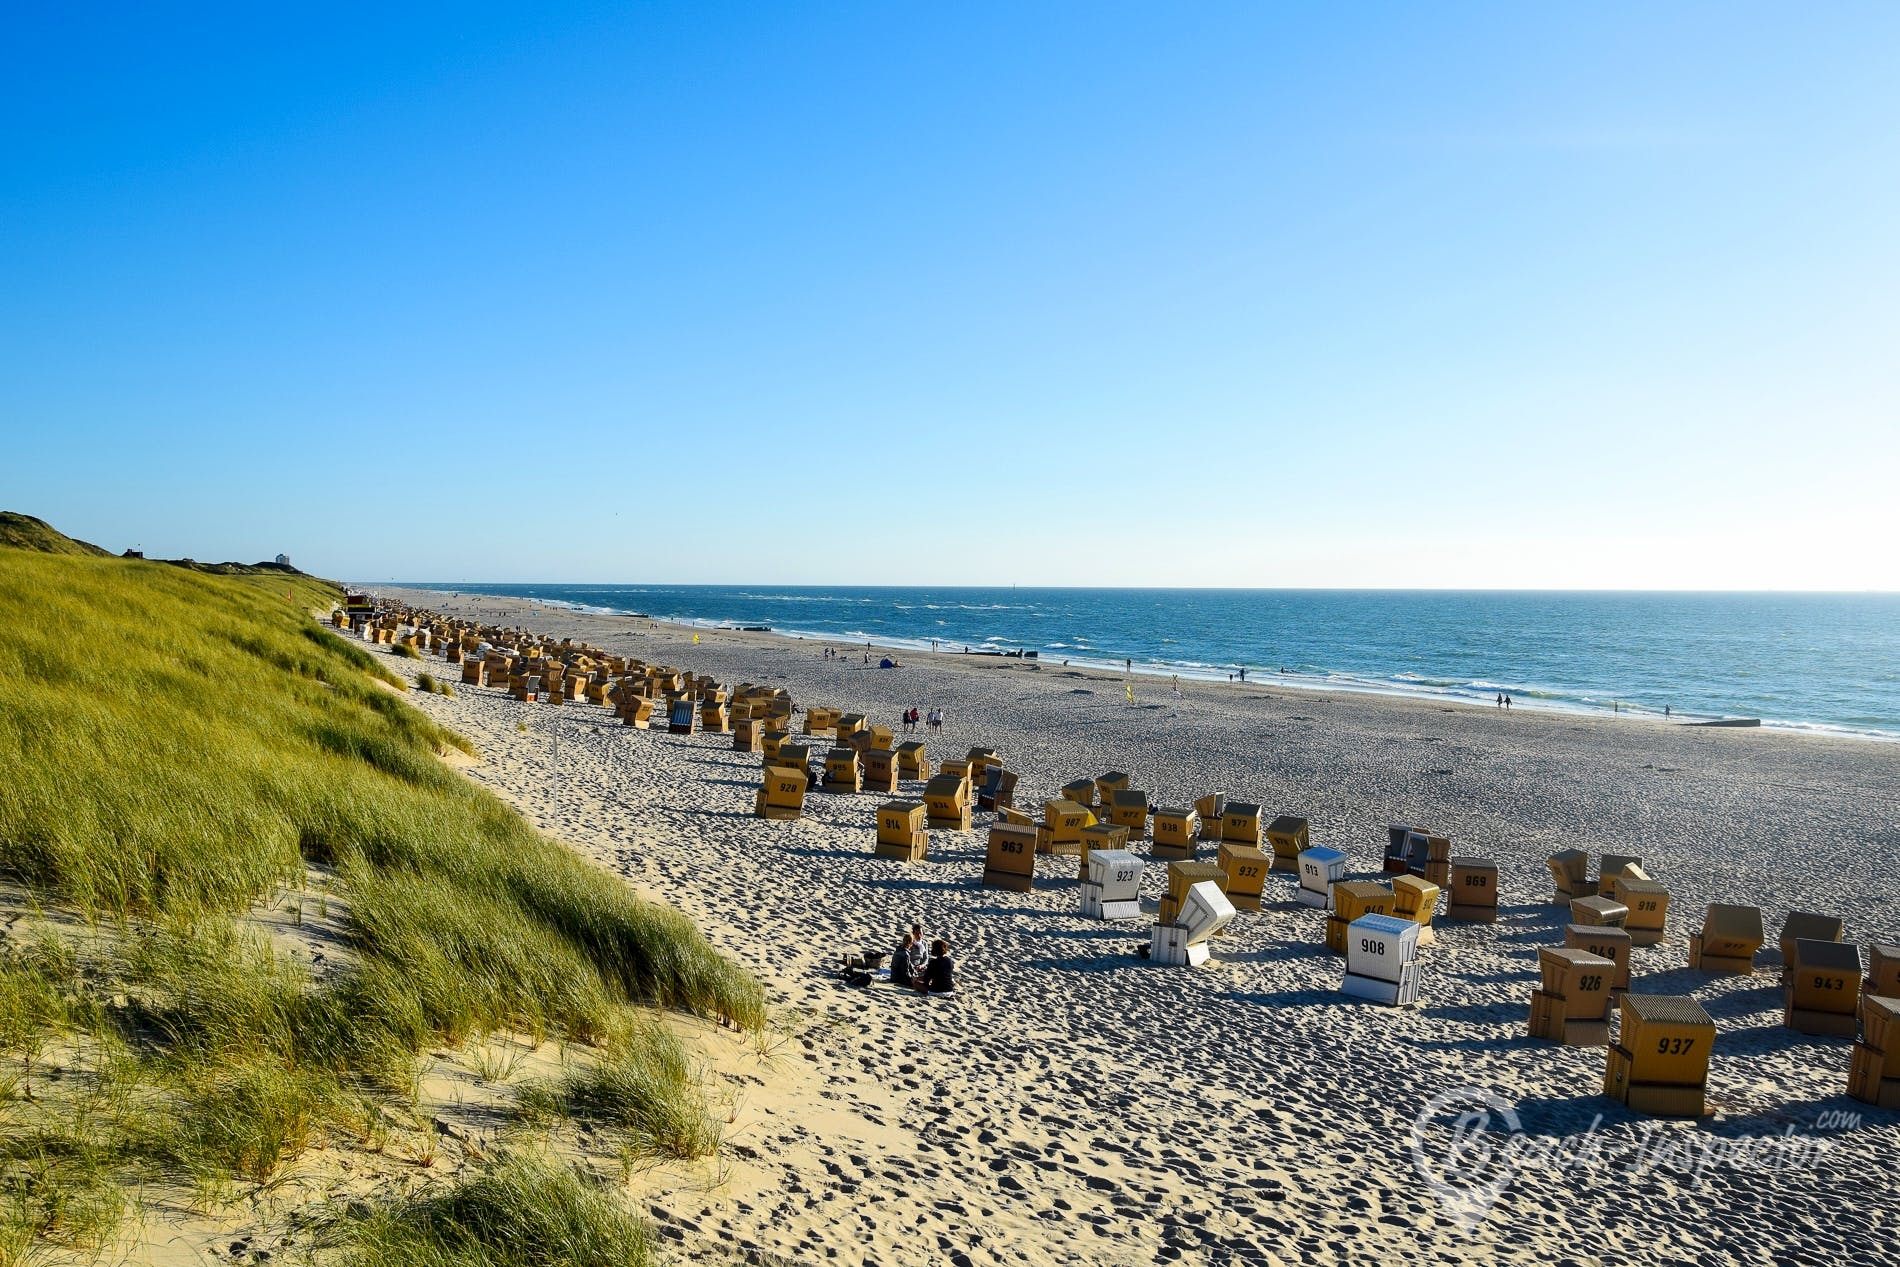 Beach Wenningstedt Hauptstrand, Sylt, Germany